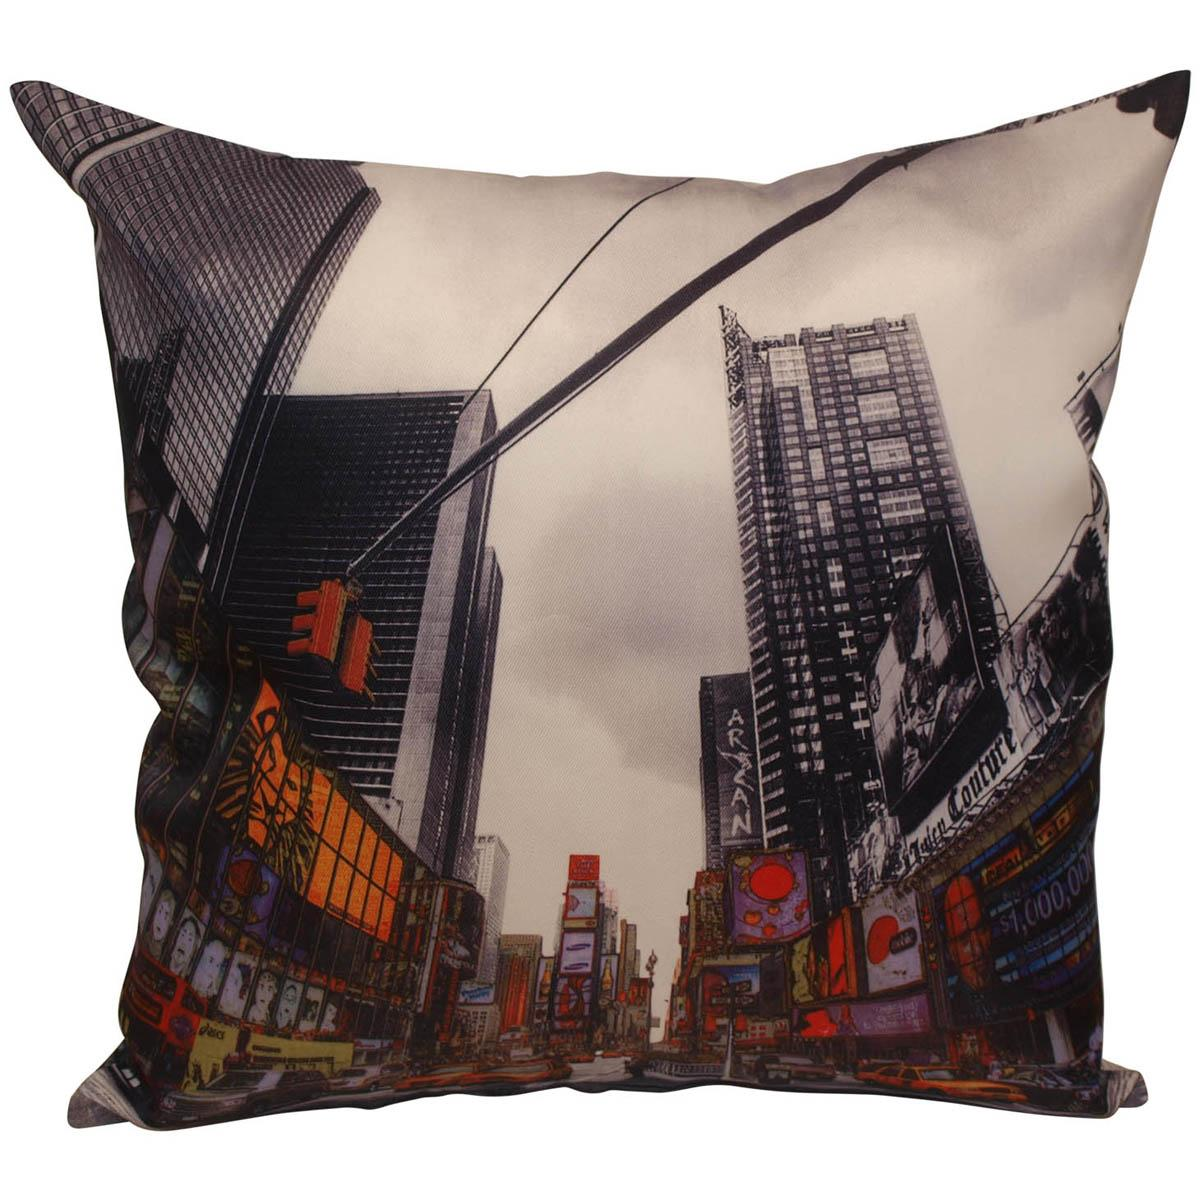 Alan Symonds Cushions And Throws Time Square Filled Cushion Multi Picture